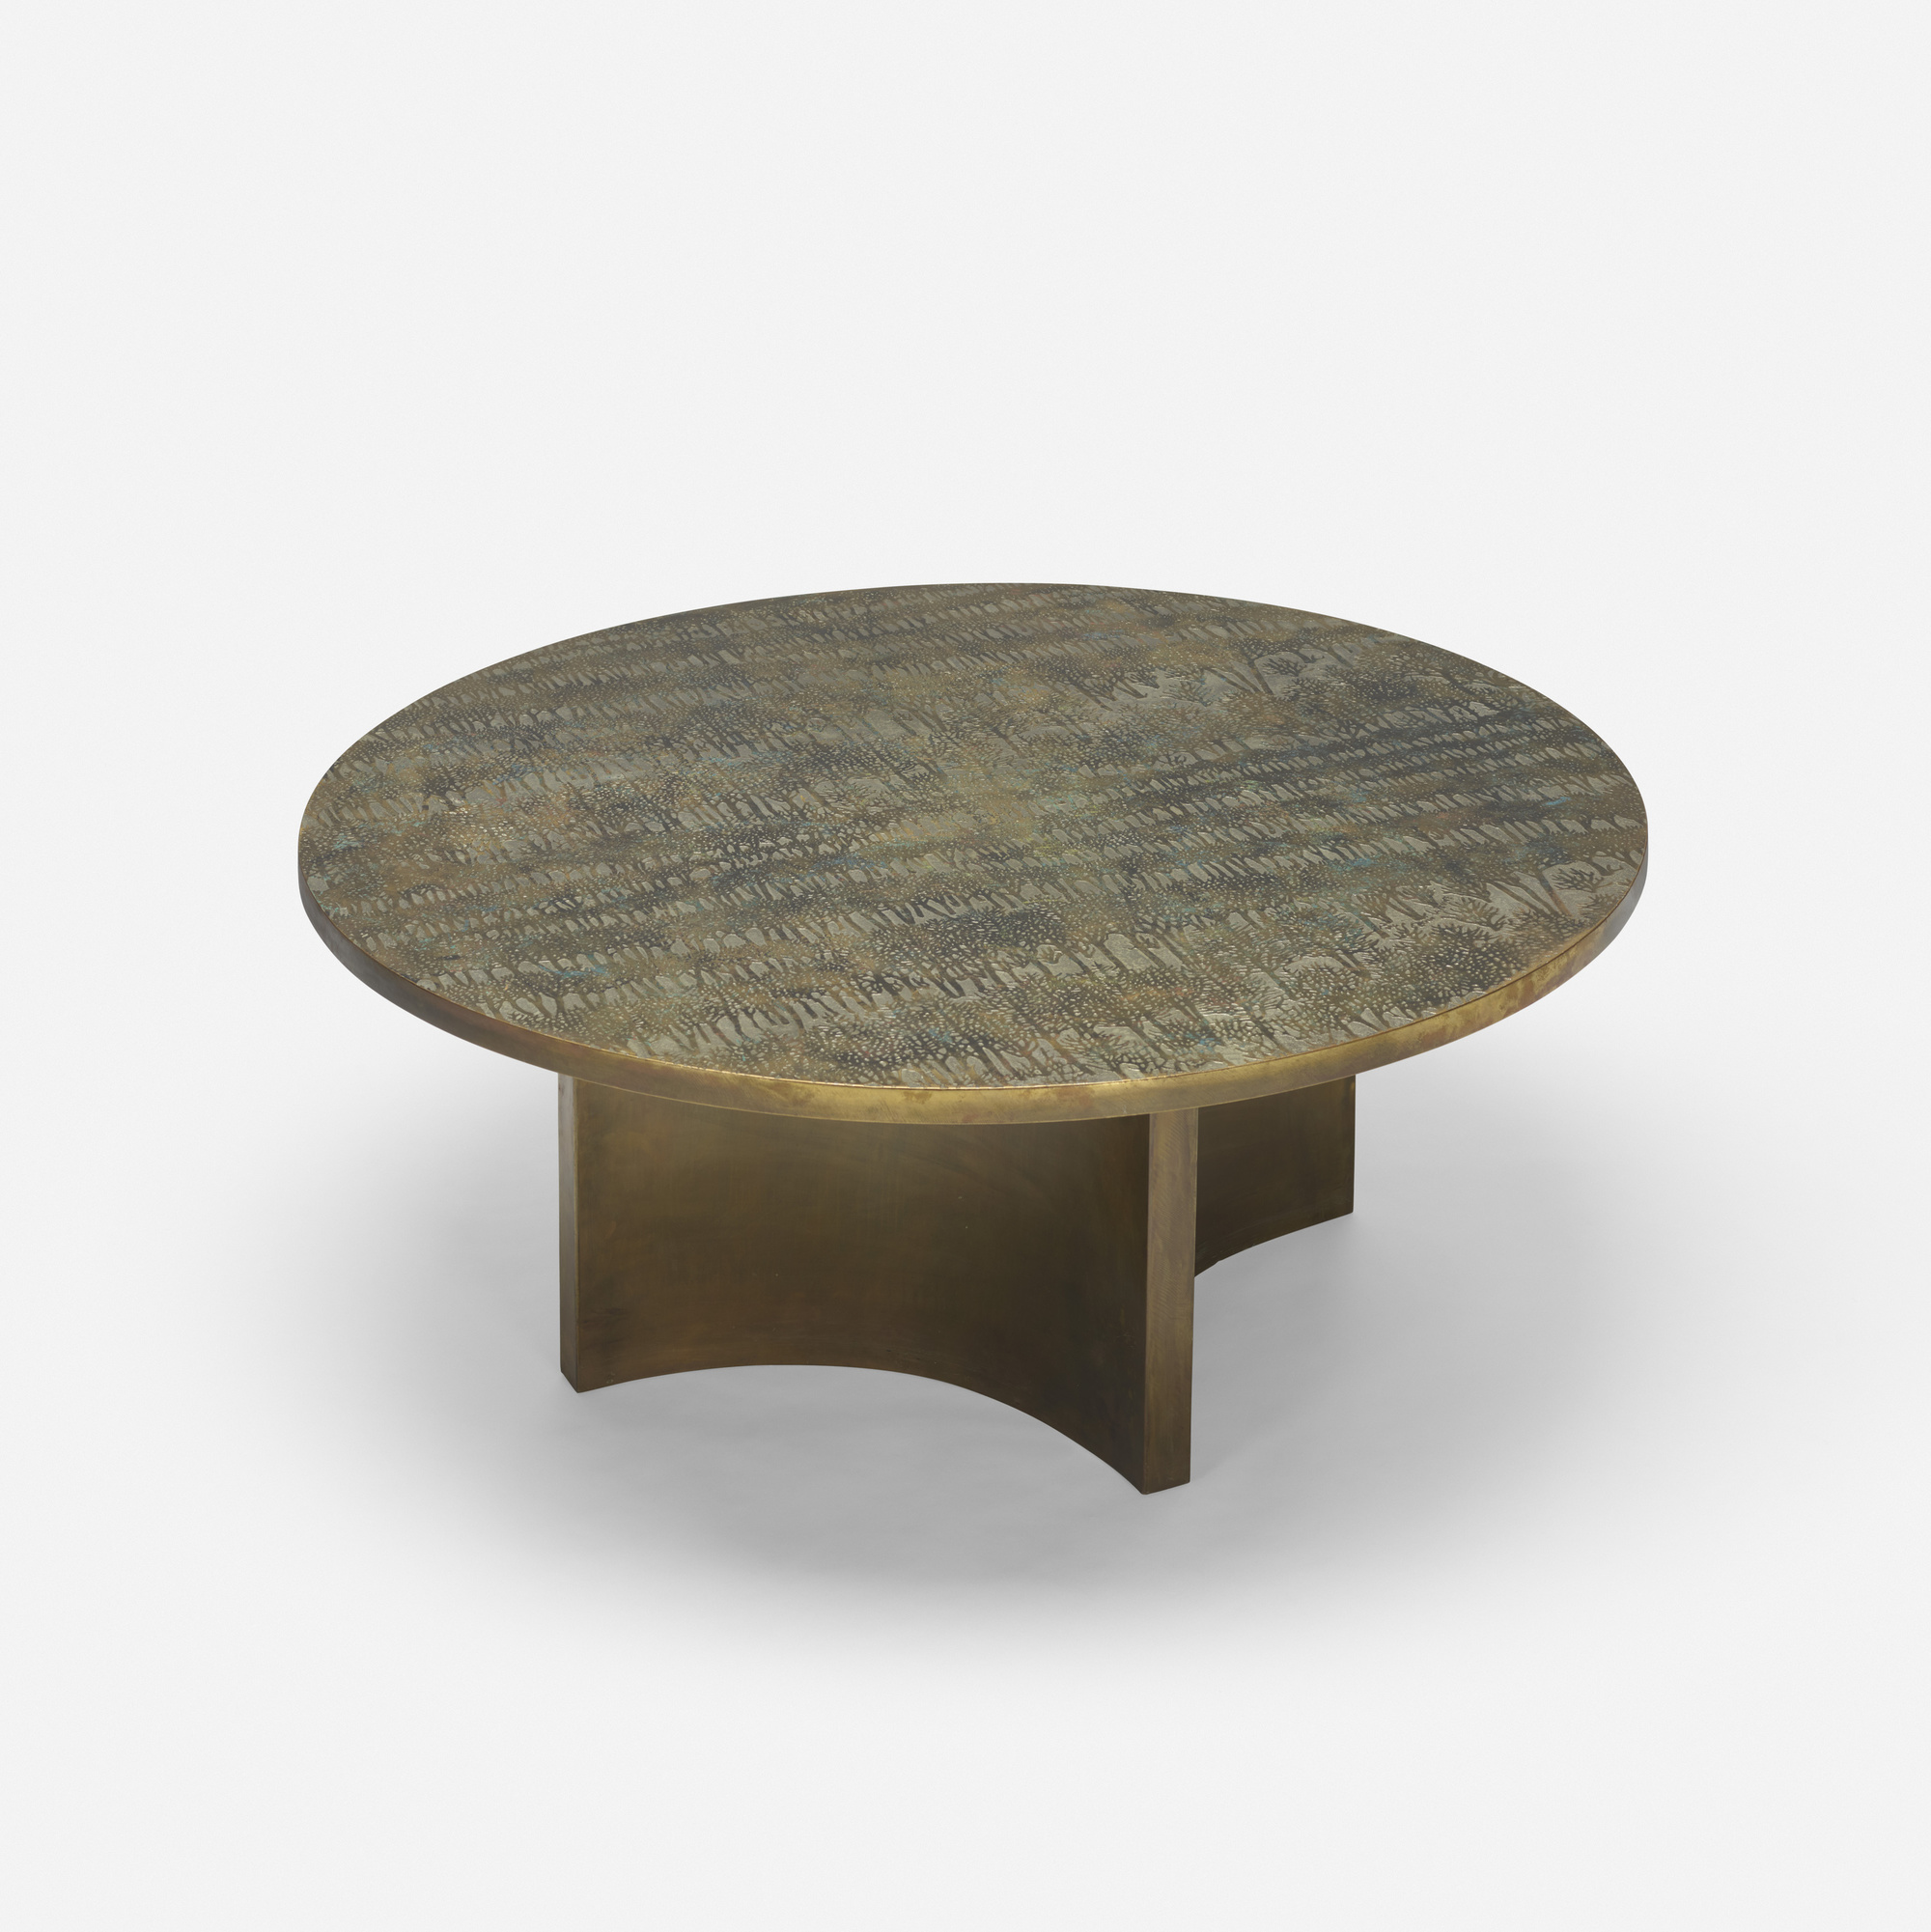 371: Philip and Kelvin LaVerne / Eternal Forest coffee table (1 of 3)